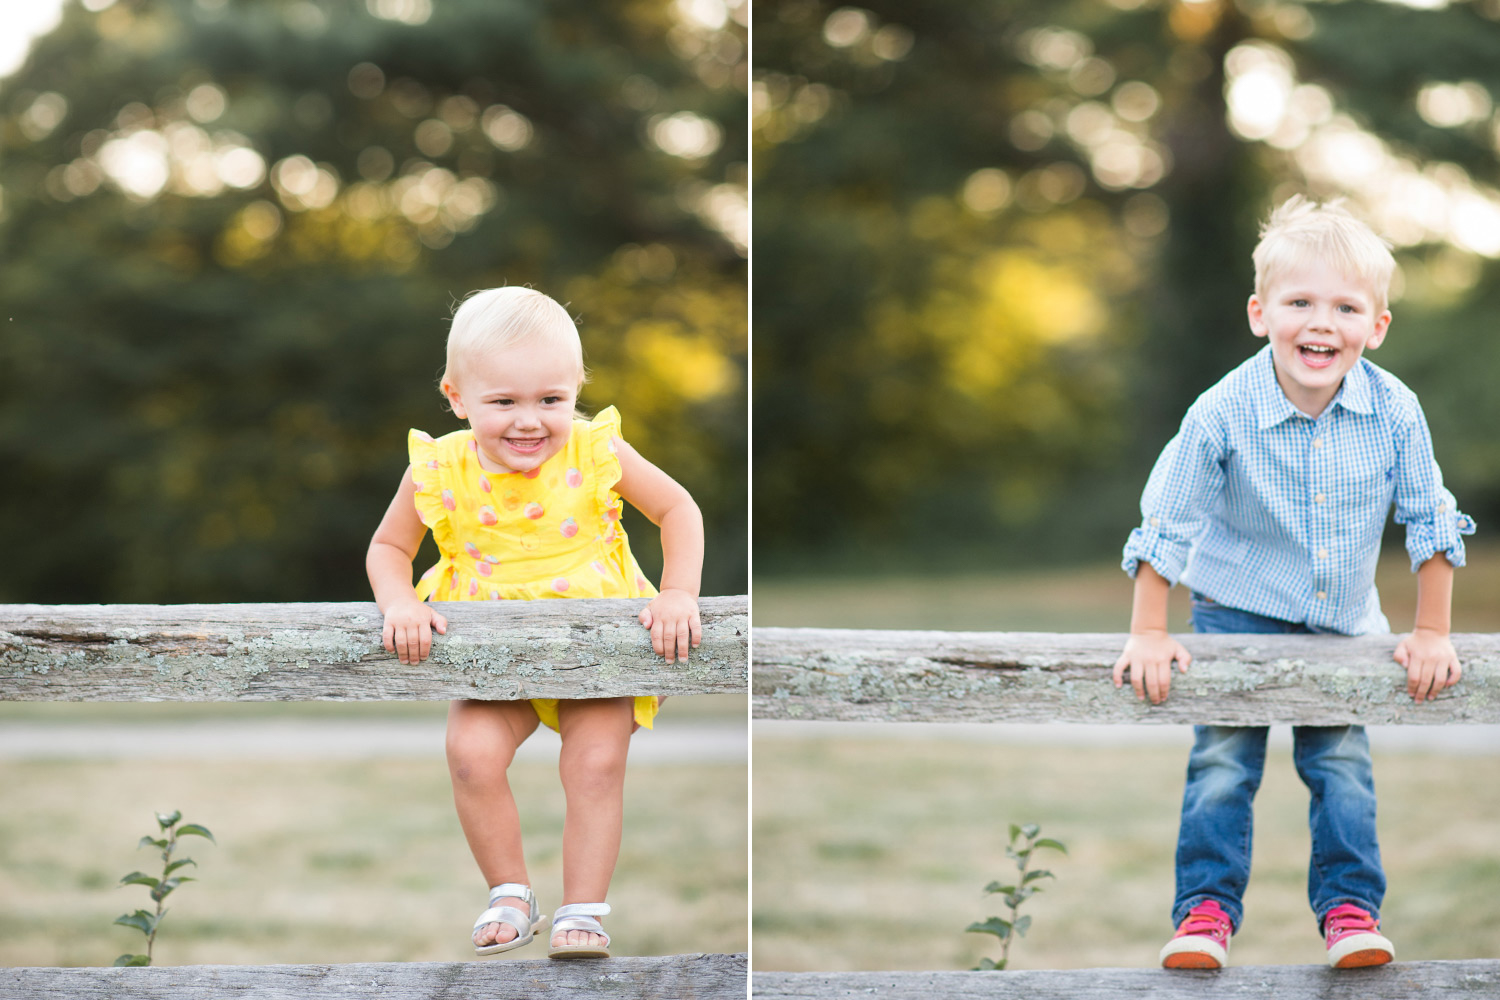 summer-orchard-family-photo-session-boston-13